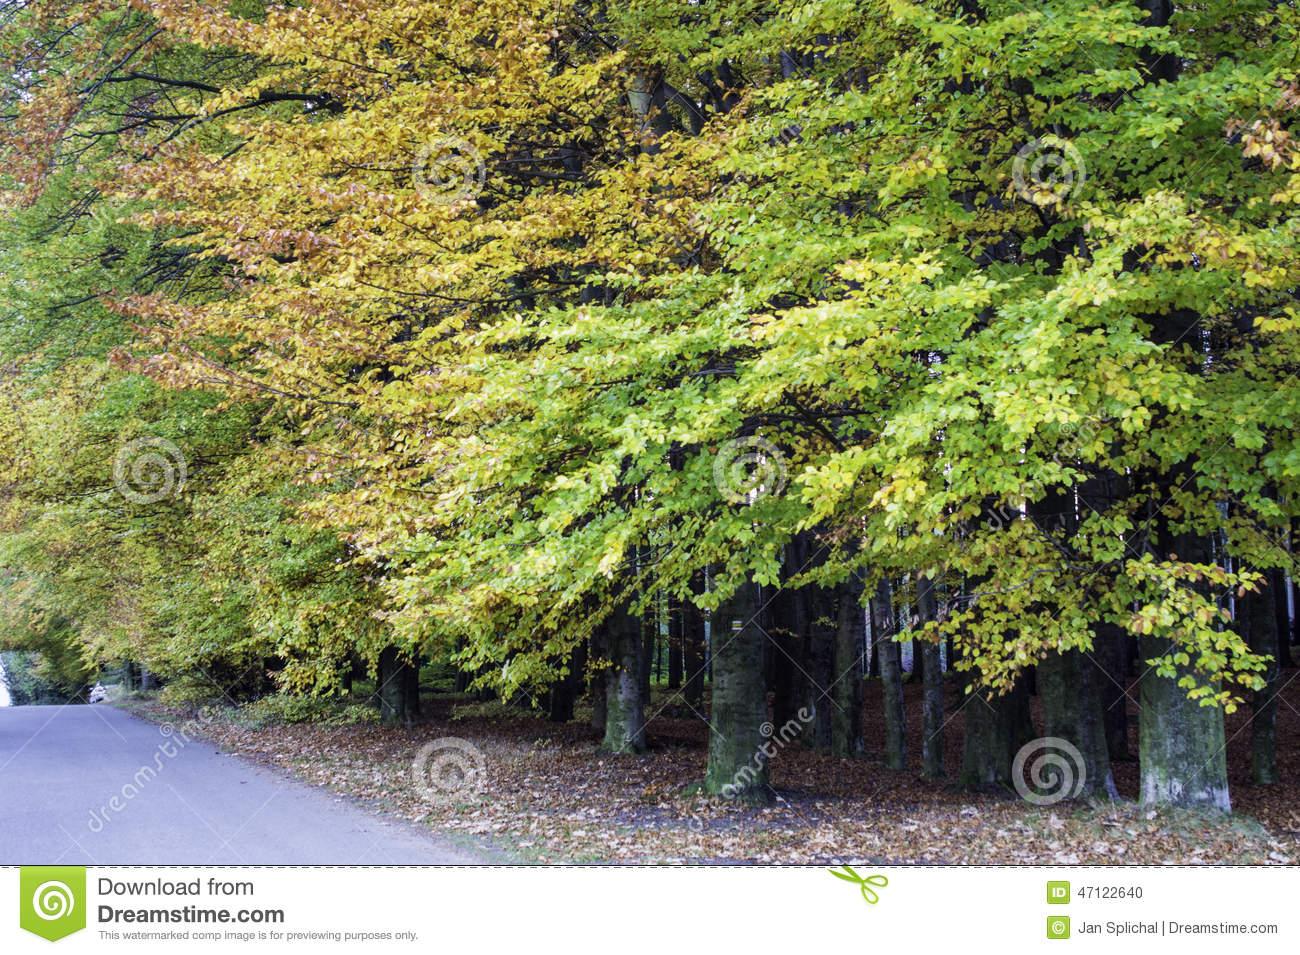 Forrest in automn